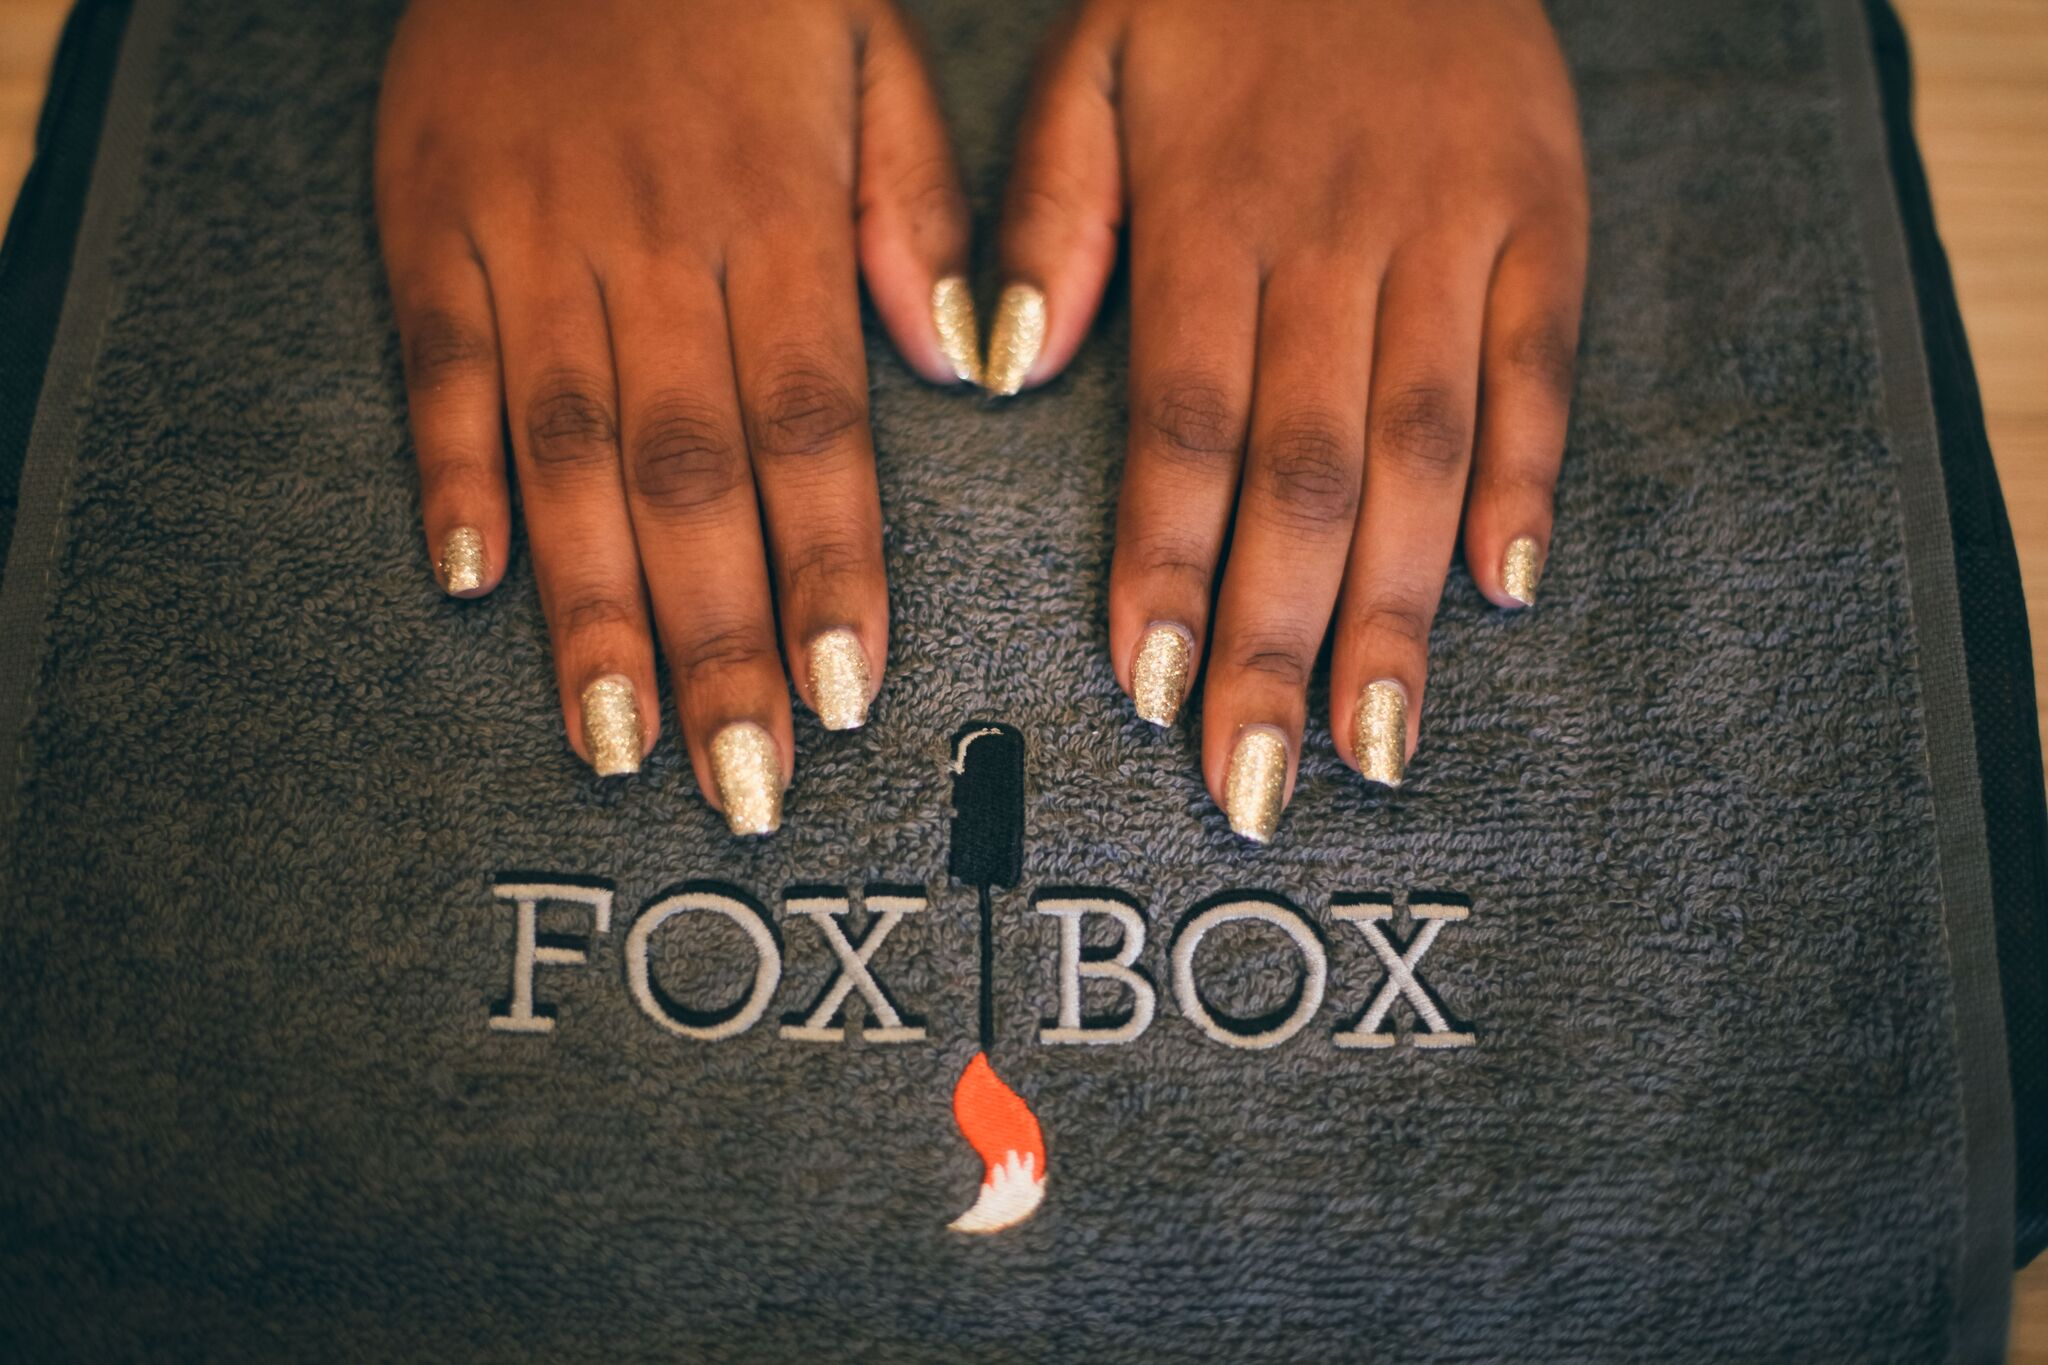 FoxBox collaboration with The Perfect Proposal